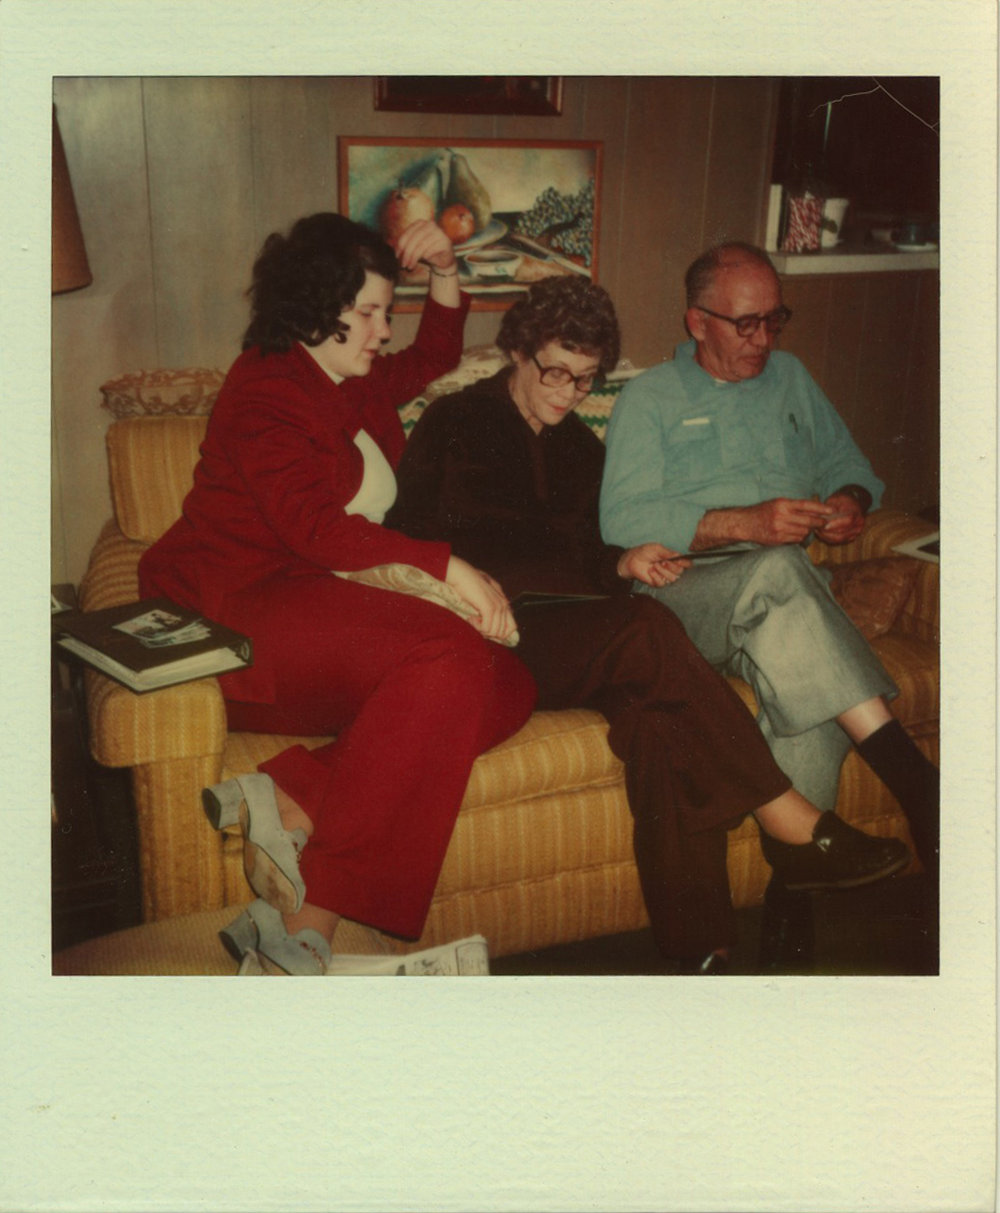 1980 - Colleen, Betty & Ernest / Houston, TX